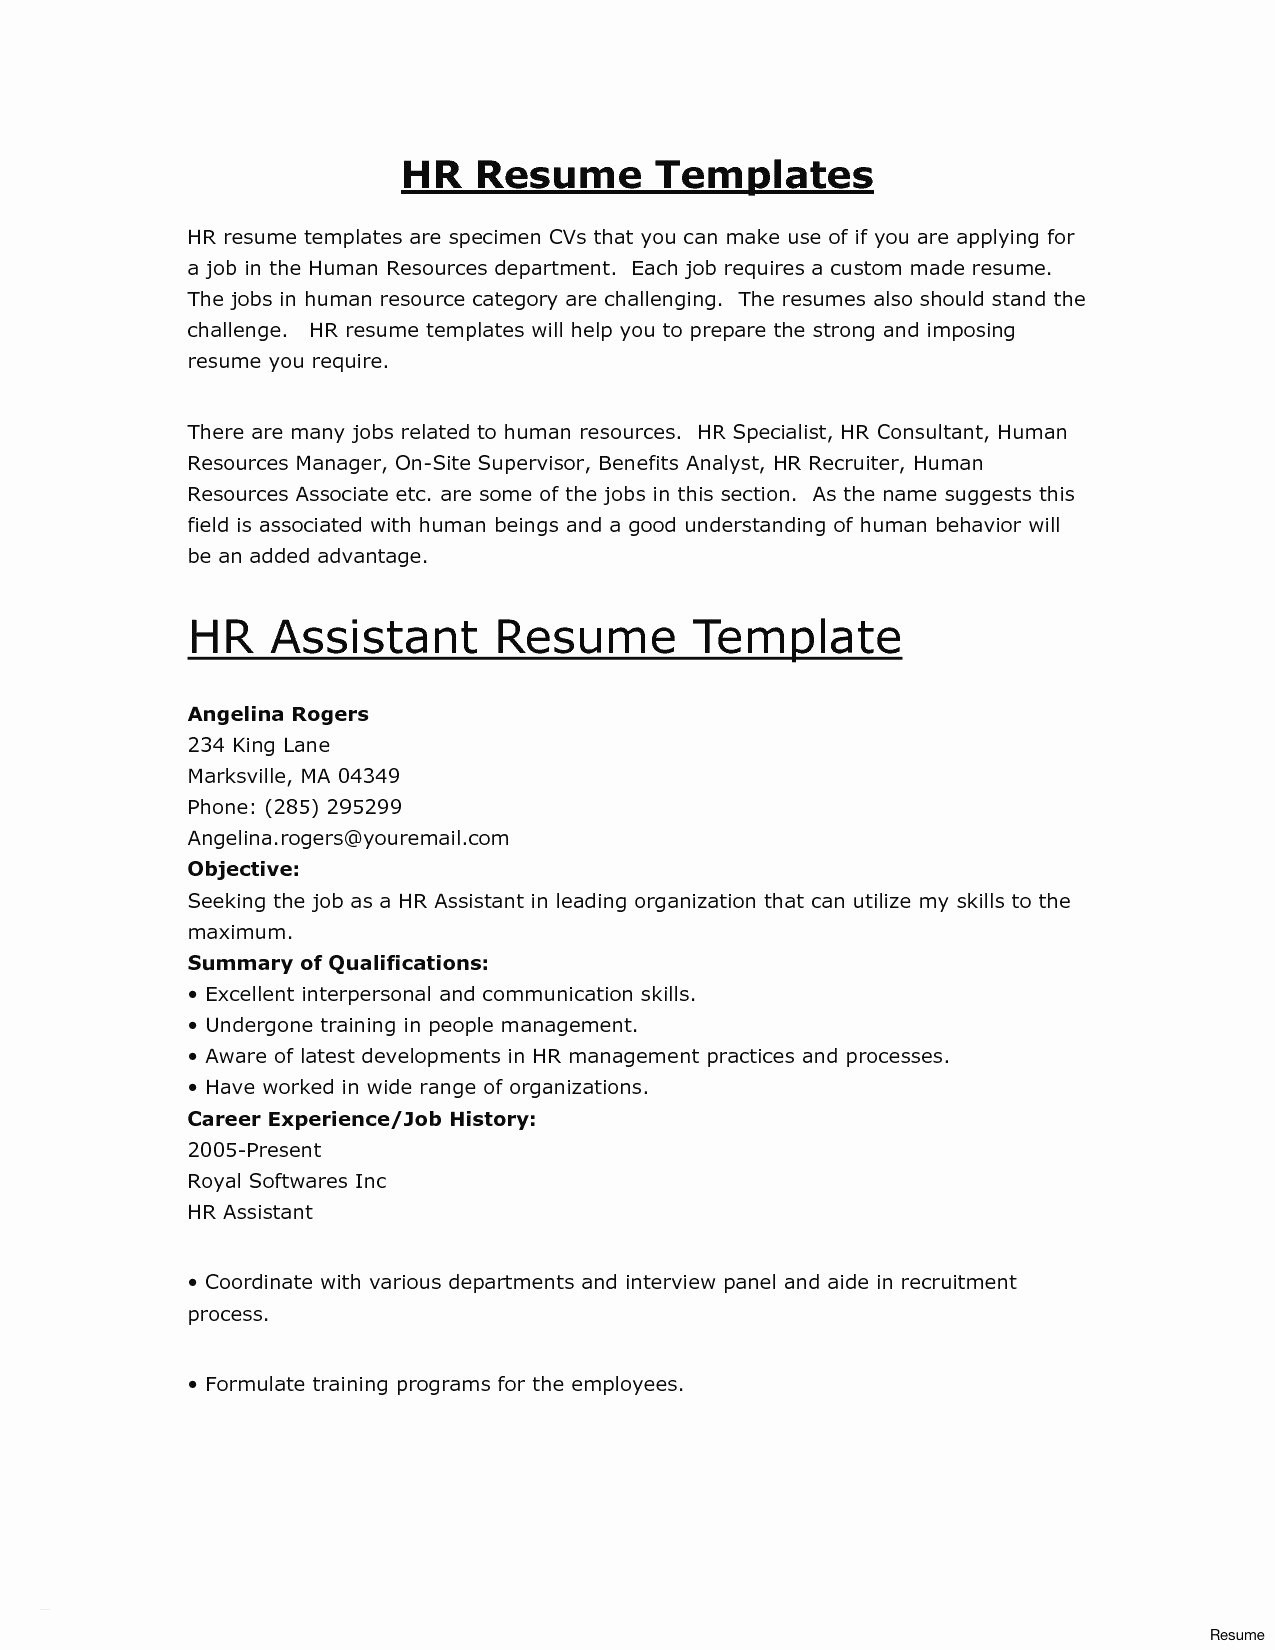 Human Resource Resume Template - Download Luxury Word 2013 Resume Templates